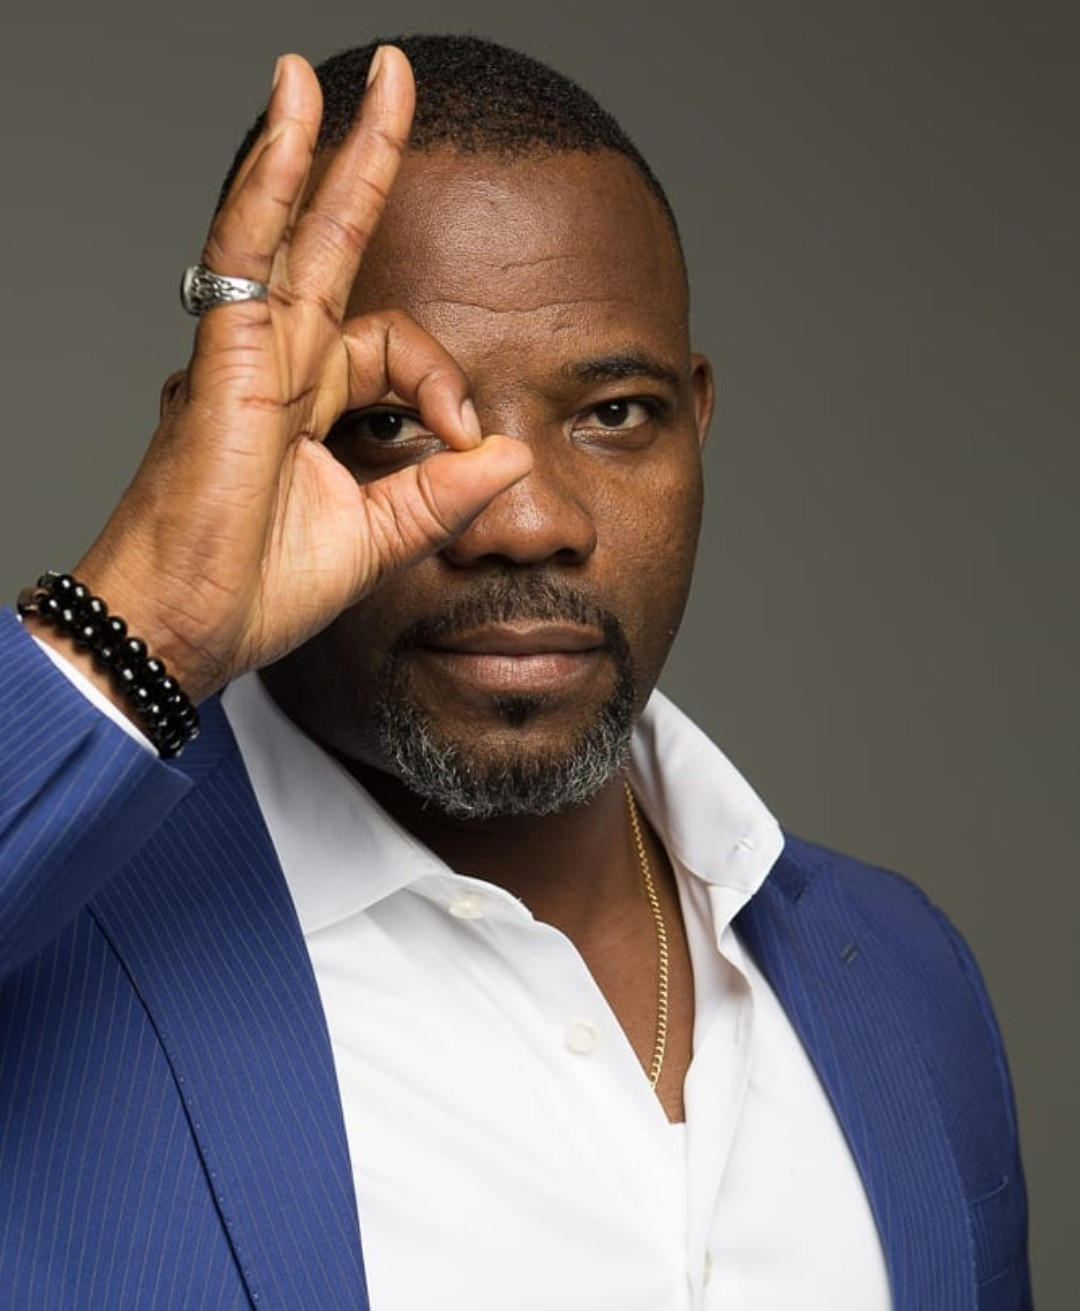 Okey Bakassi Speaks On Having Business With Iluminati